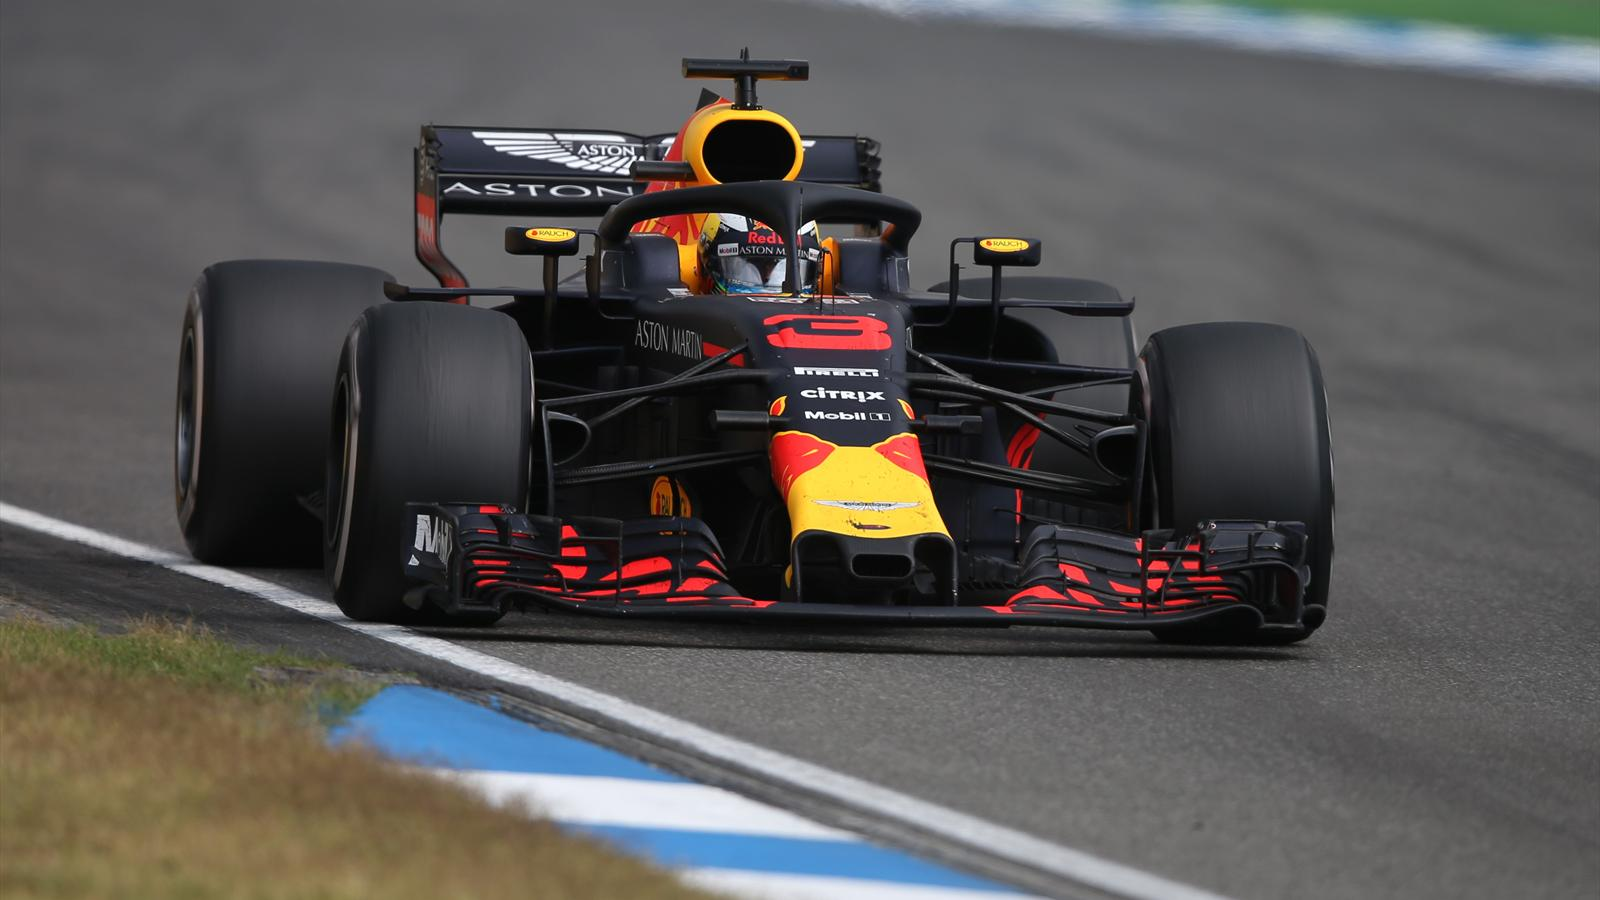 formule 1 gp de hongrie ricciardo transferts leclerc. Black Bedroom Furniture Sets. Home Design Ideas